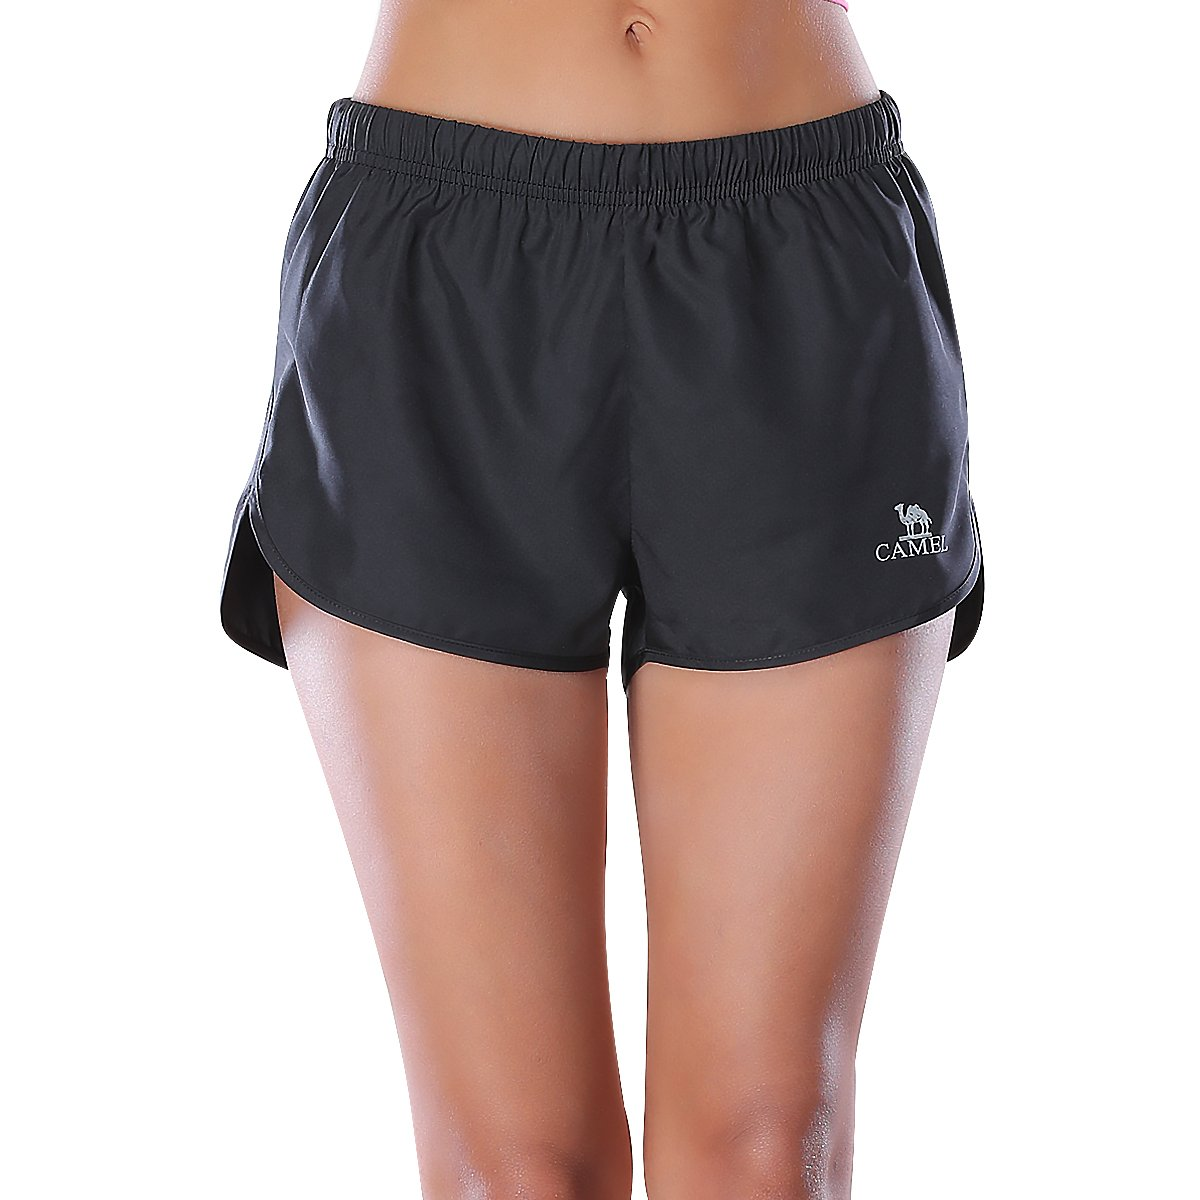 Men's/Women's Summer Casual Quick Dry Active Sport Shorts Running, Workout, Training